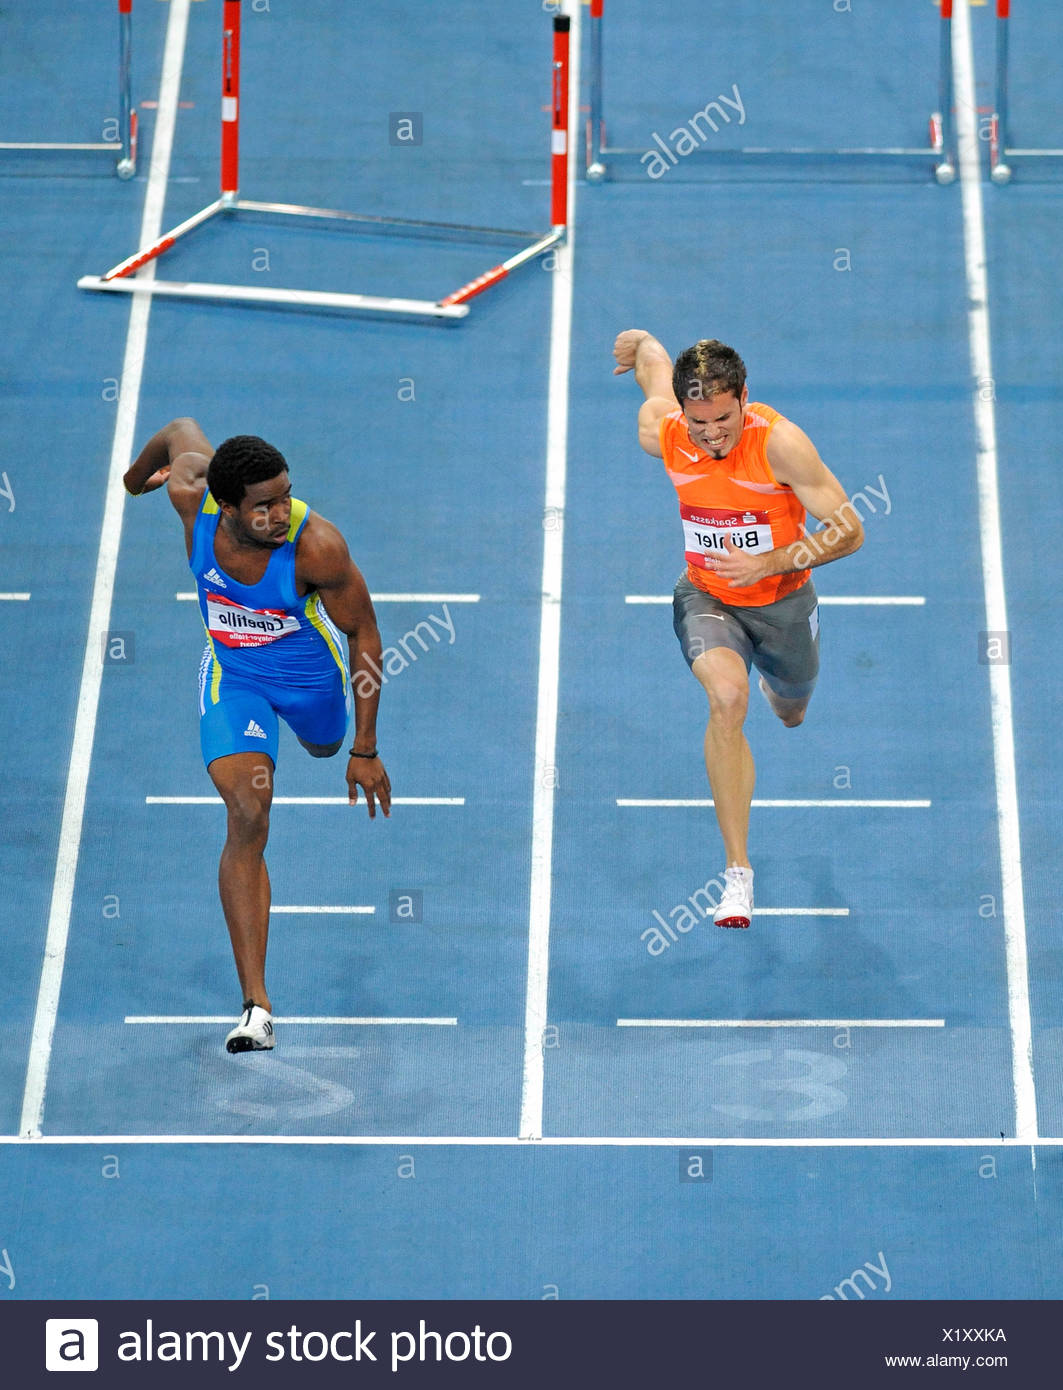 Men's Hurdles, finish, left to right: Matthias BUEHLER, GER, Dayron Capetillo, CUB, Sparkassen-Cup 2010 tournament, Hanns-Marti - Stock Image